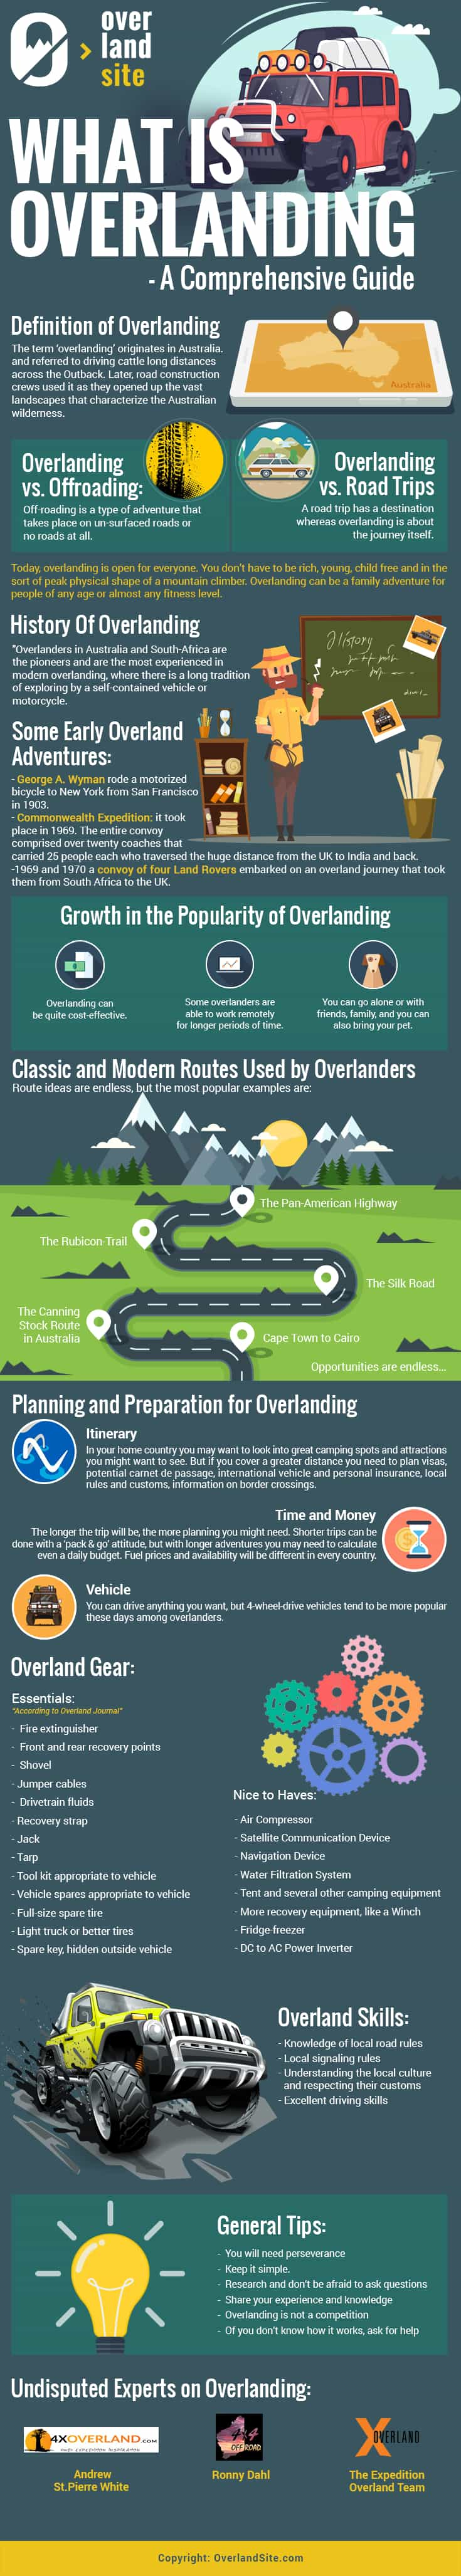 infographic explaining what overlanding is